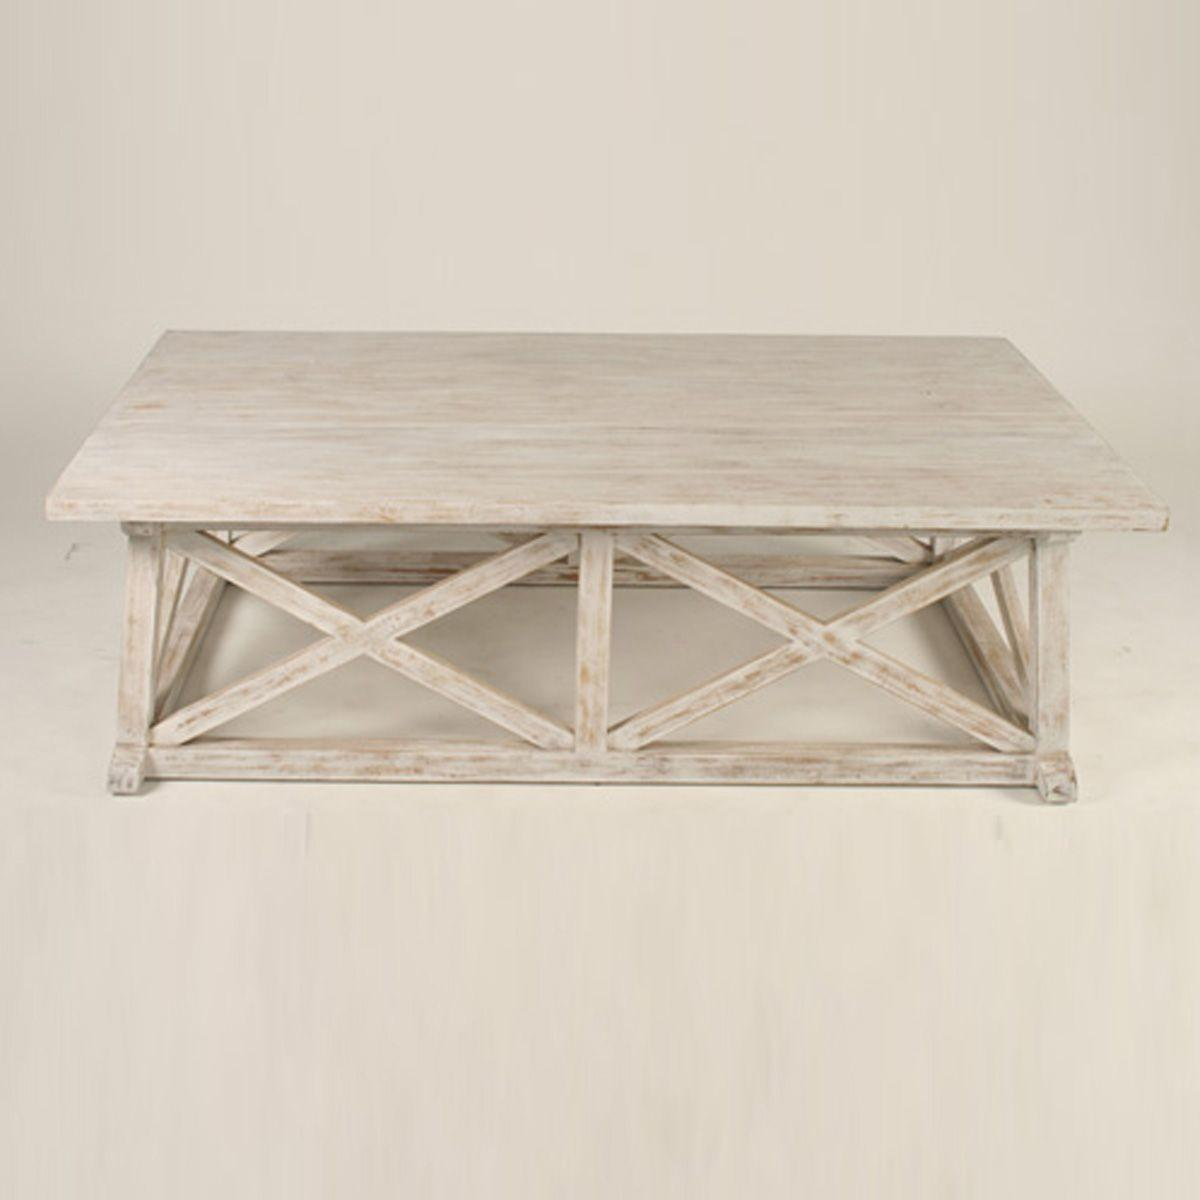 New Collection White Washed Furniture Has Arrived